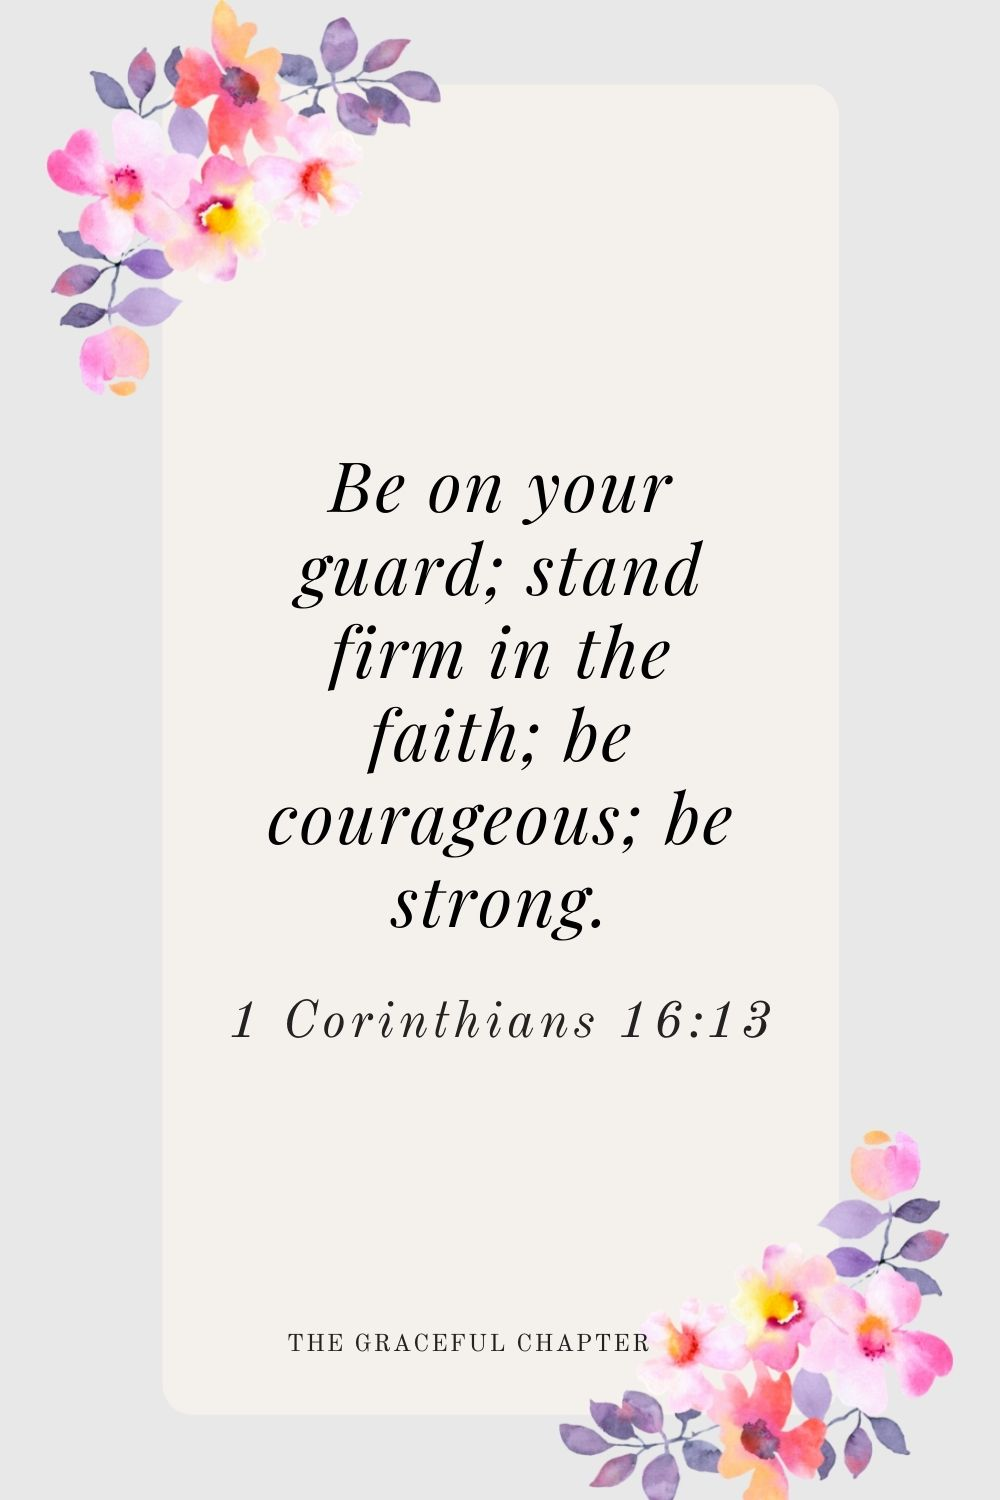 Be on your guard; stand firm in the faith; be courageous; be strong. 1 Corinthians 16:13